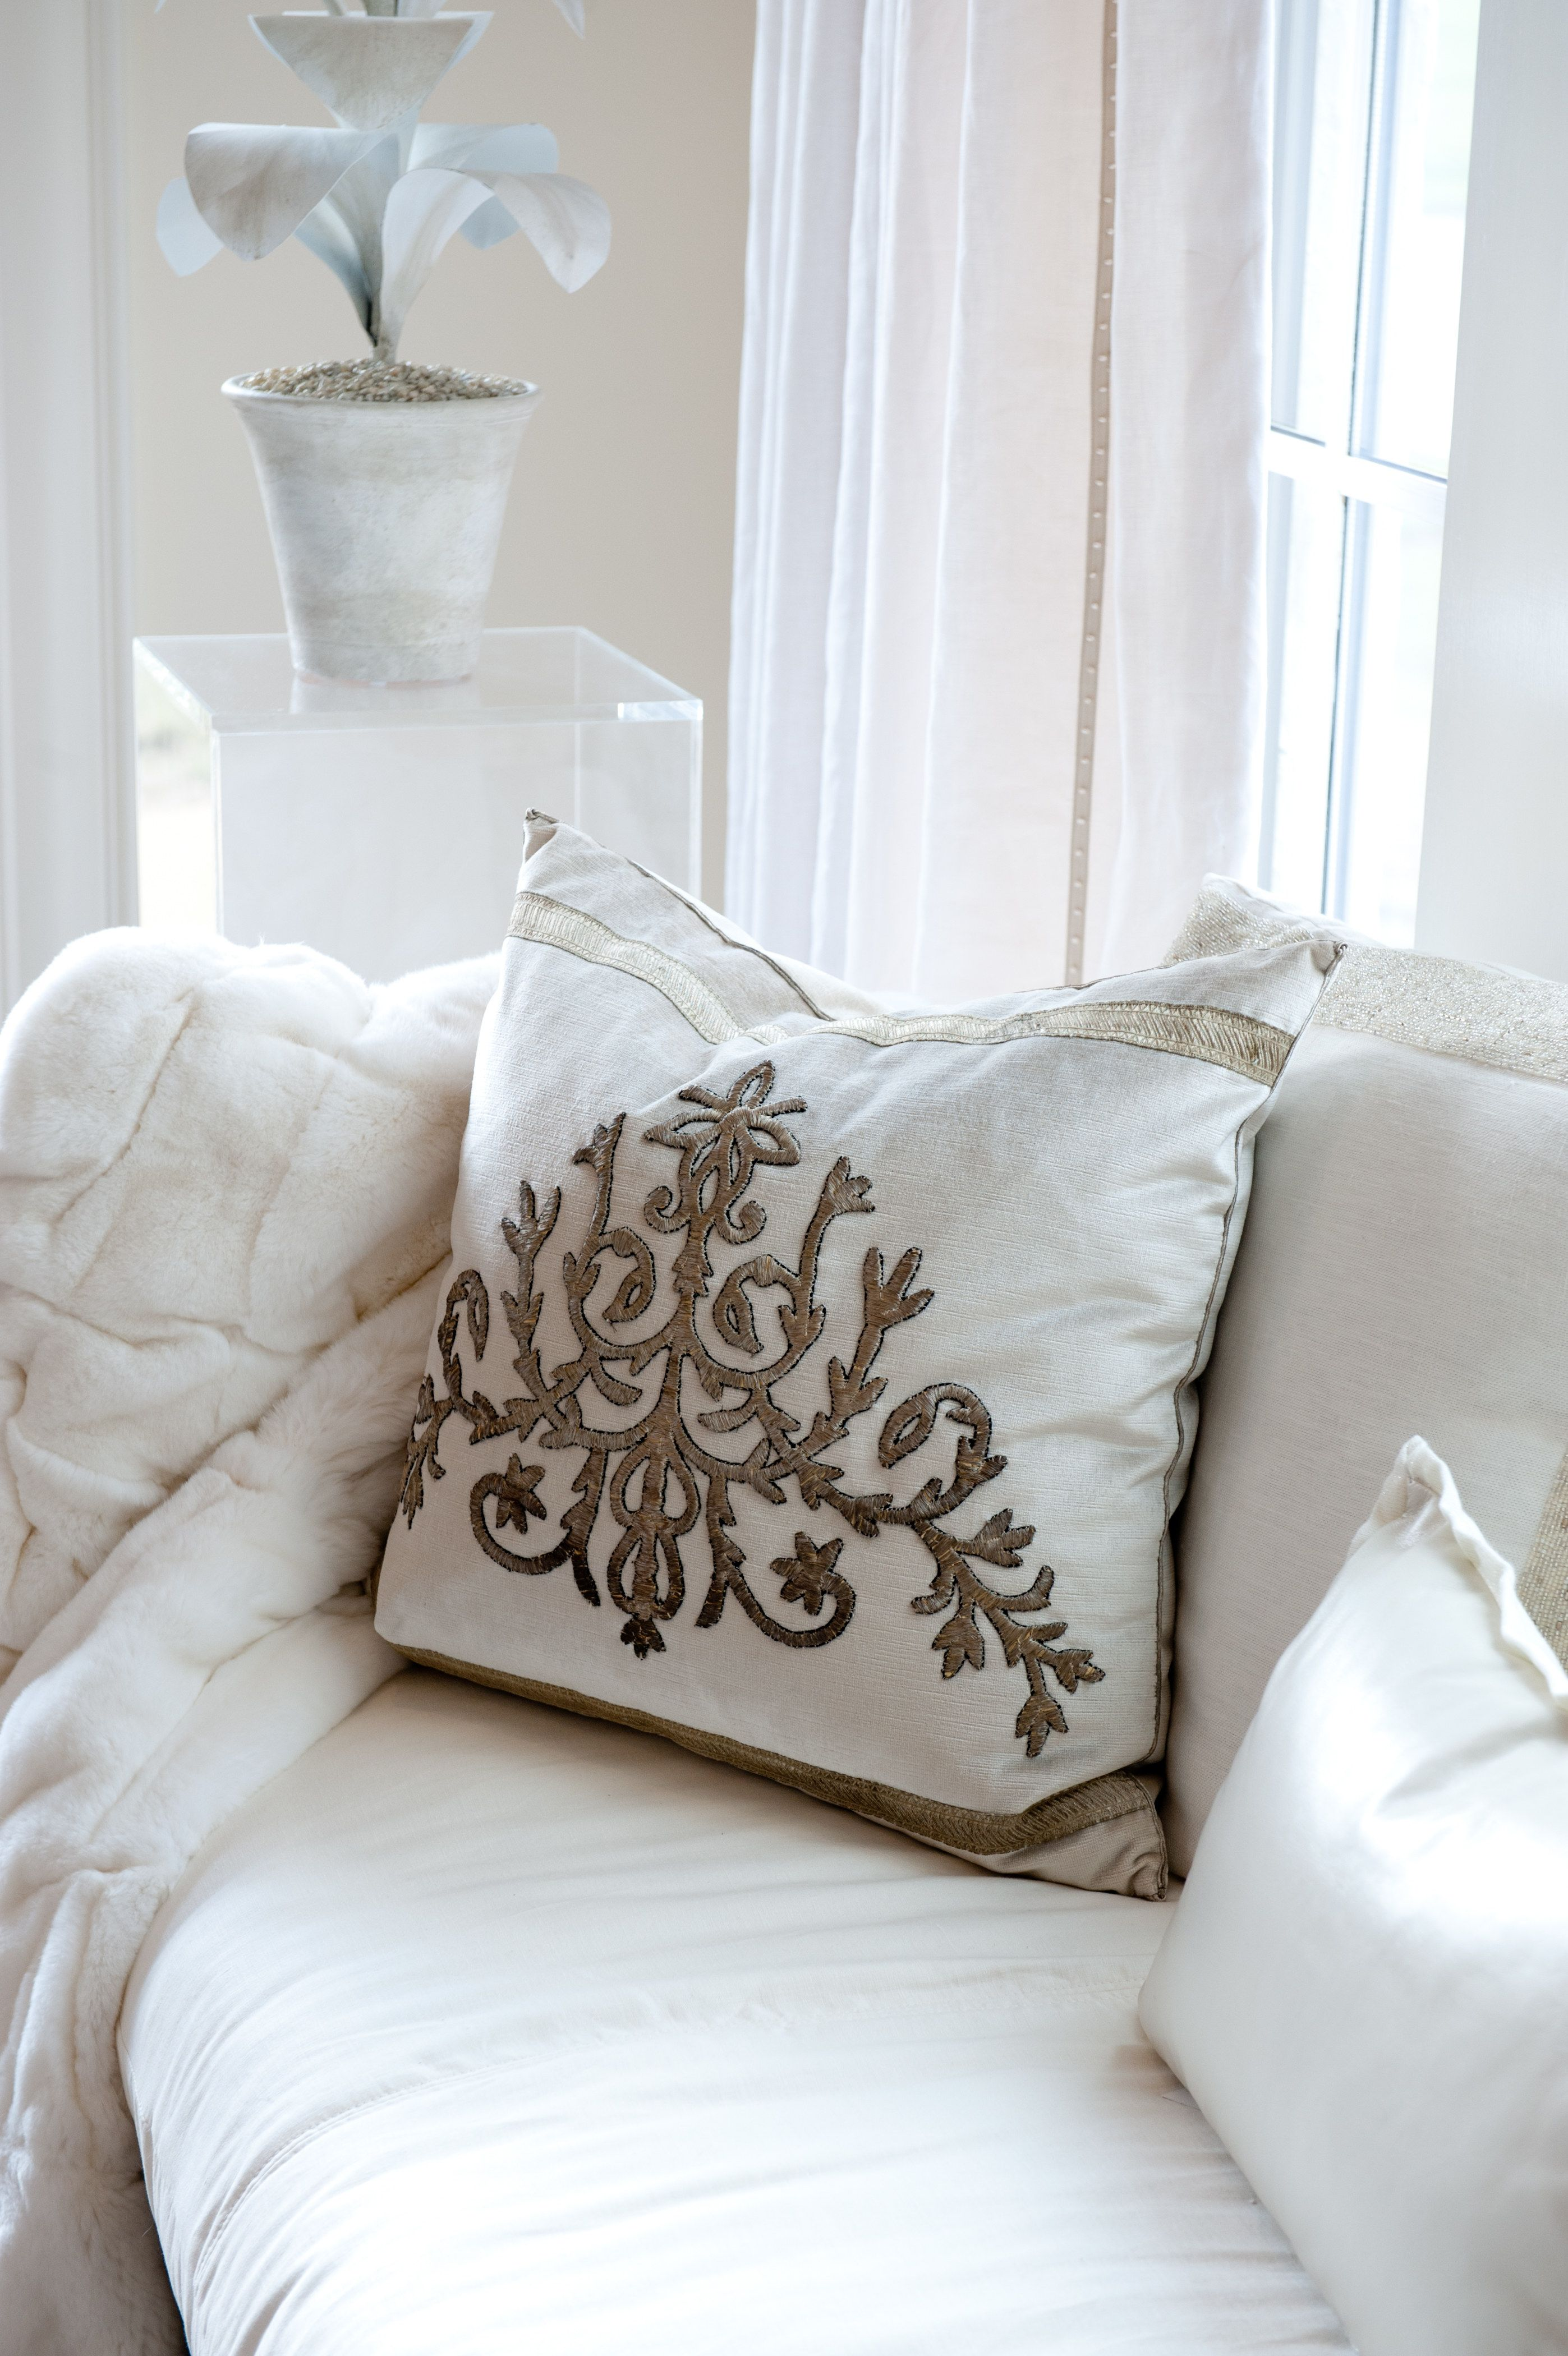 Chair Covers Jackson Ms Cover Hire Bedford The Most Incredible Throw Pillows Youve Ever Seen